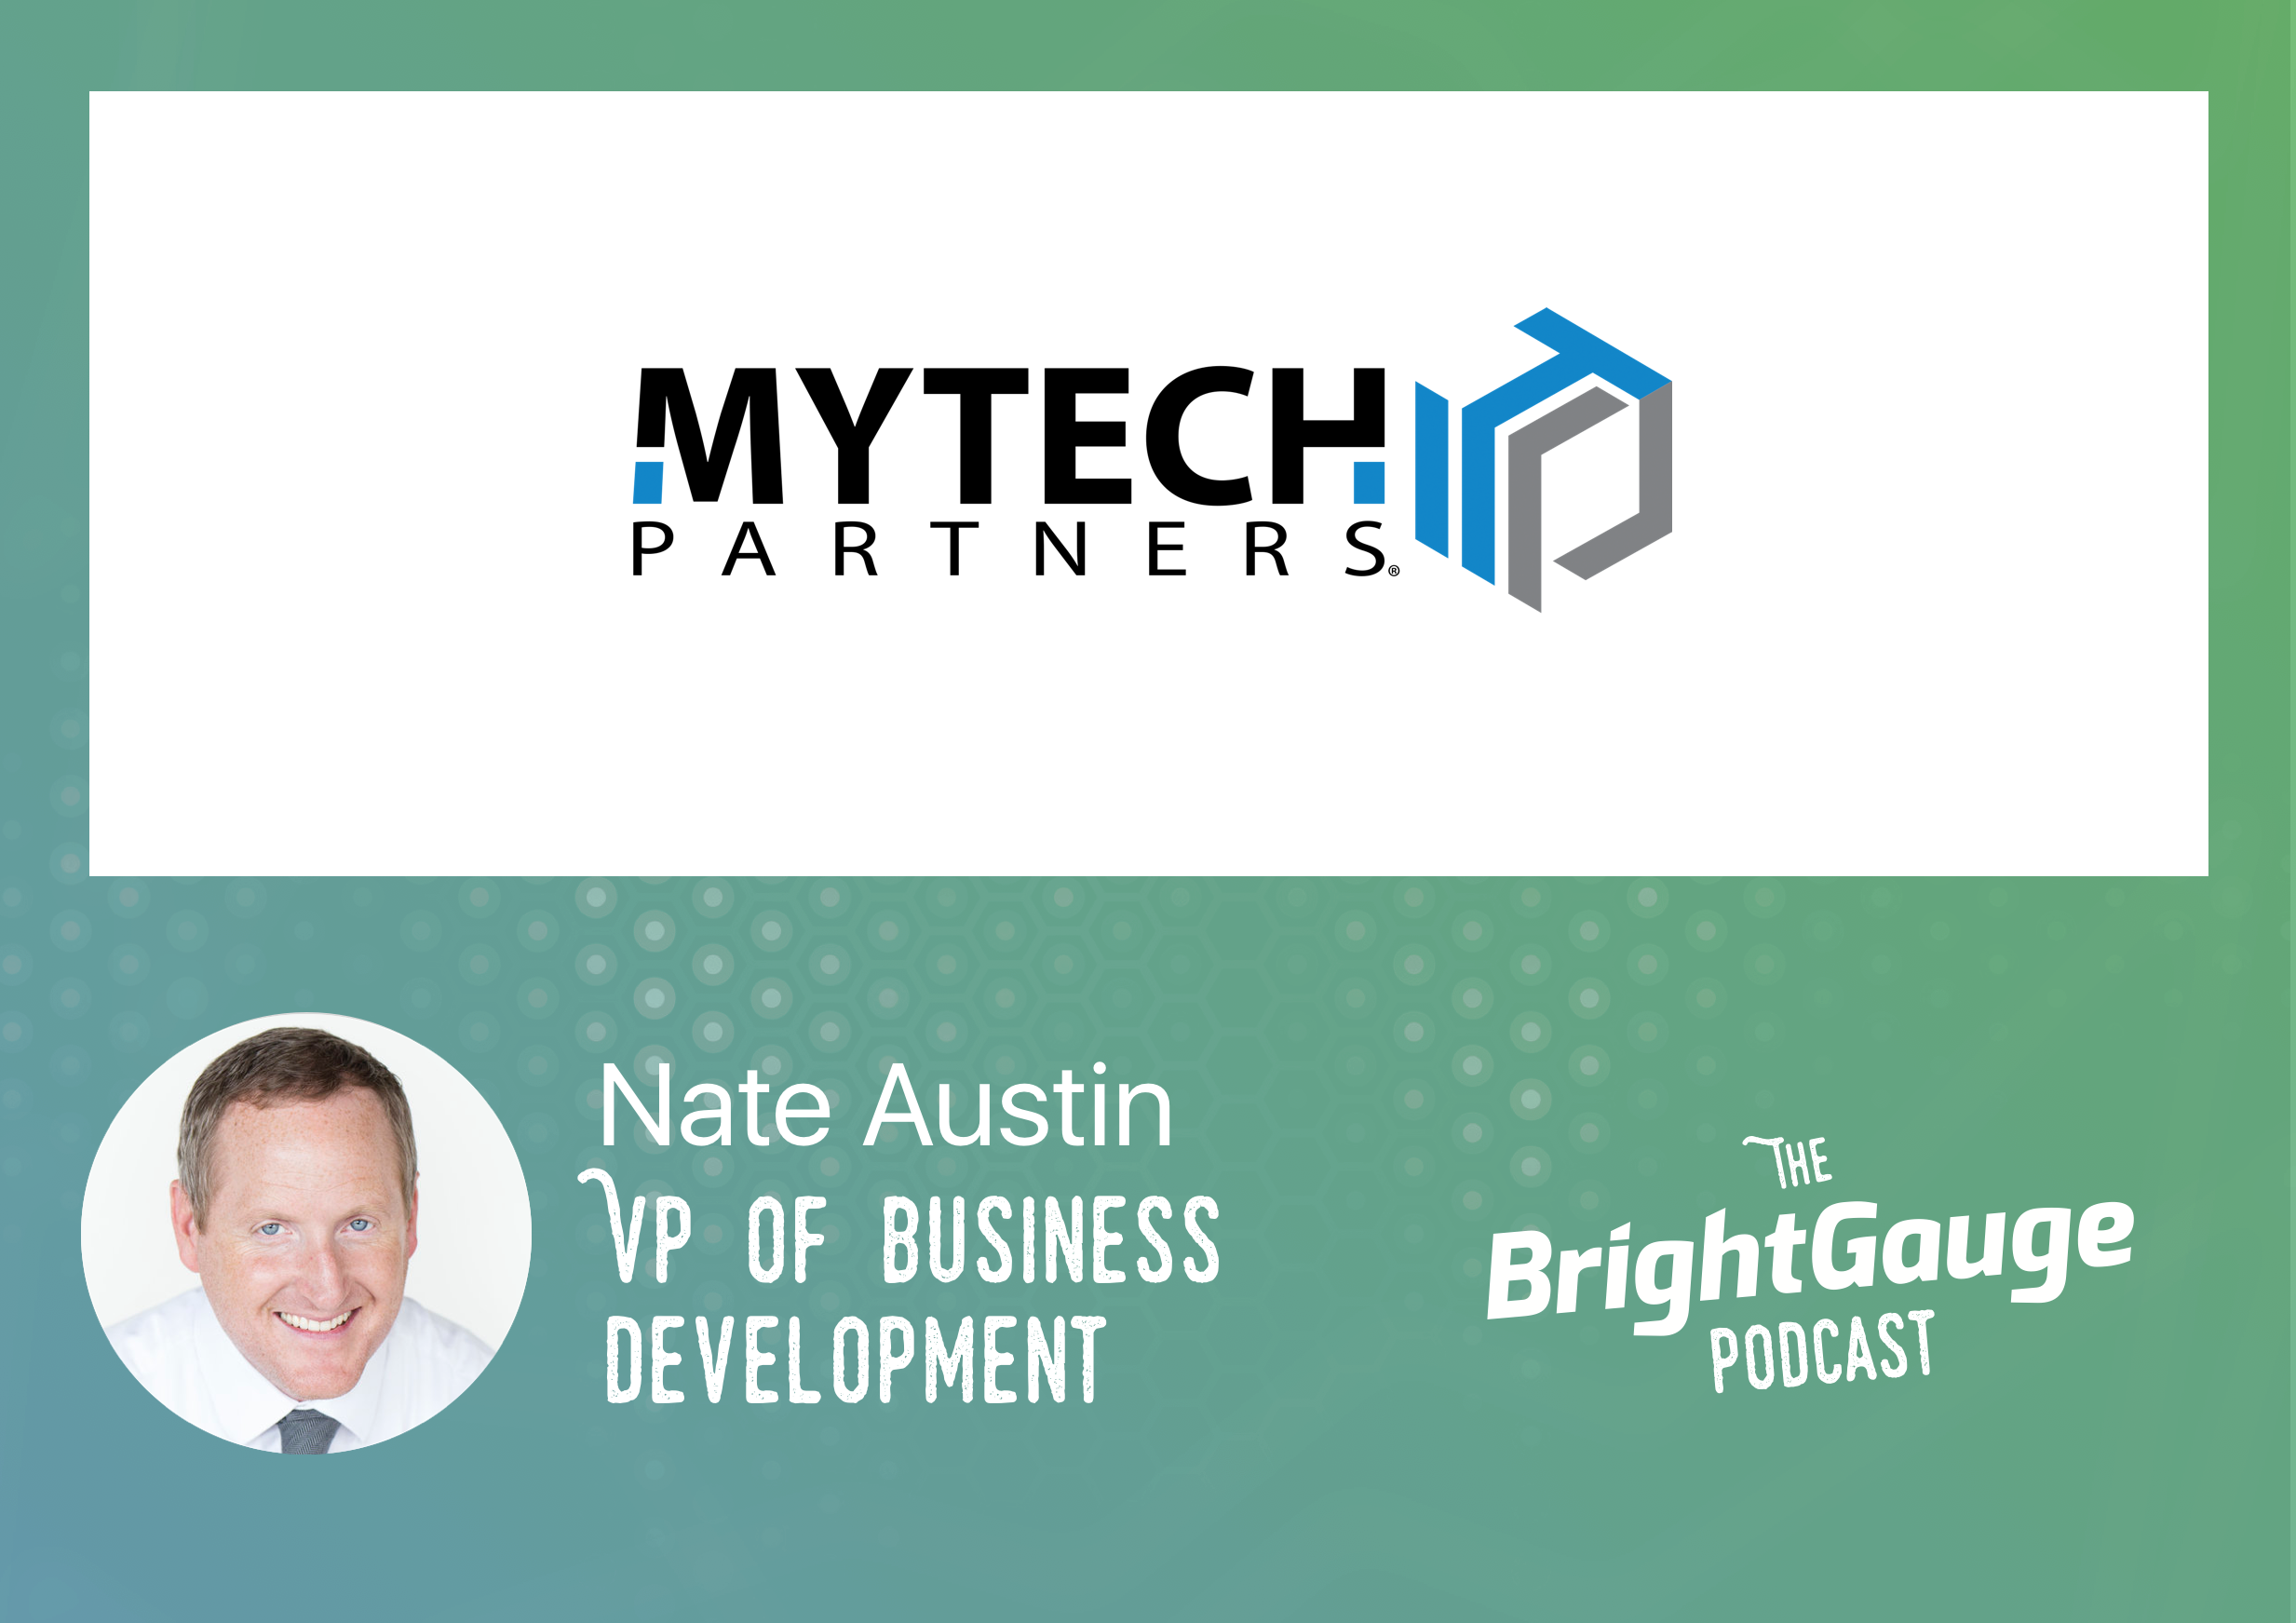 [Podcast] Episode 38 with Nate Austin of Mytech Partners